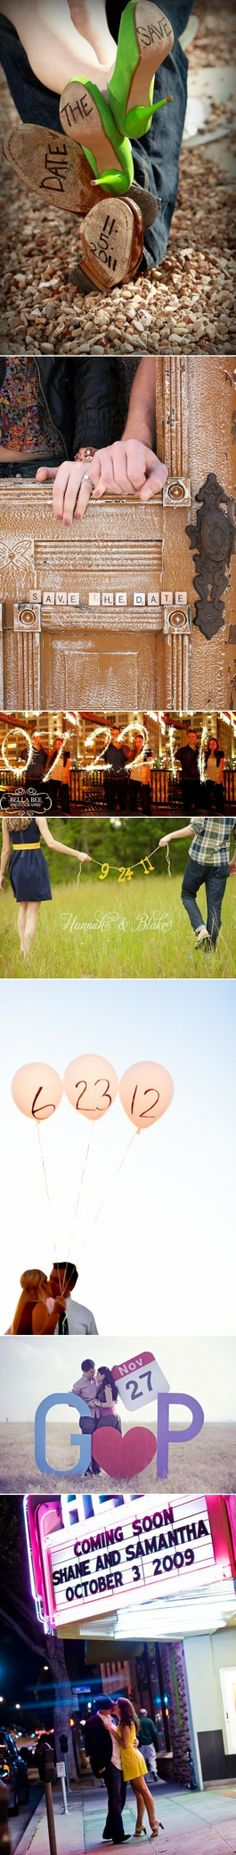 Spring Wedding Trends Of 2014: Get creative with these out of the box save-the-date ideas - Hubub